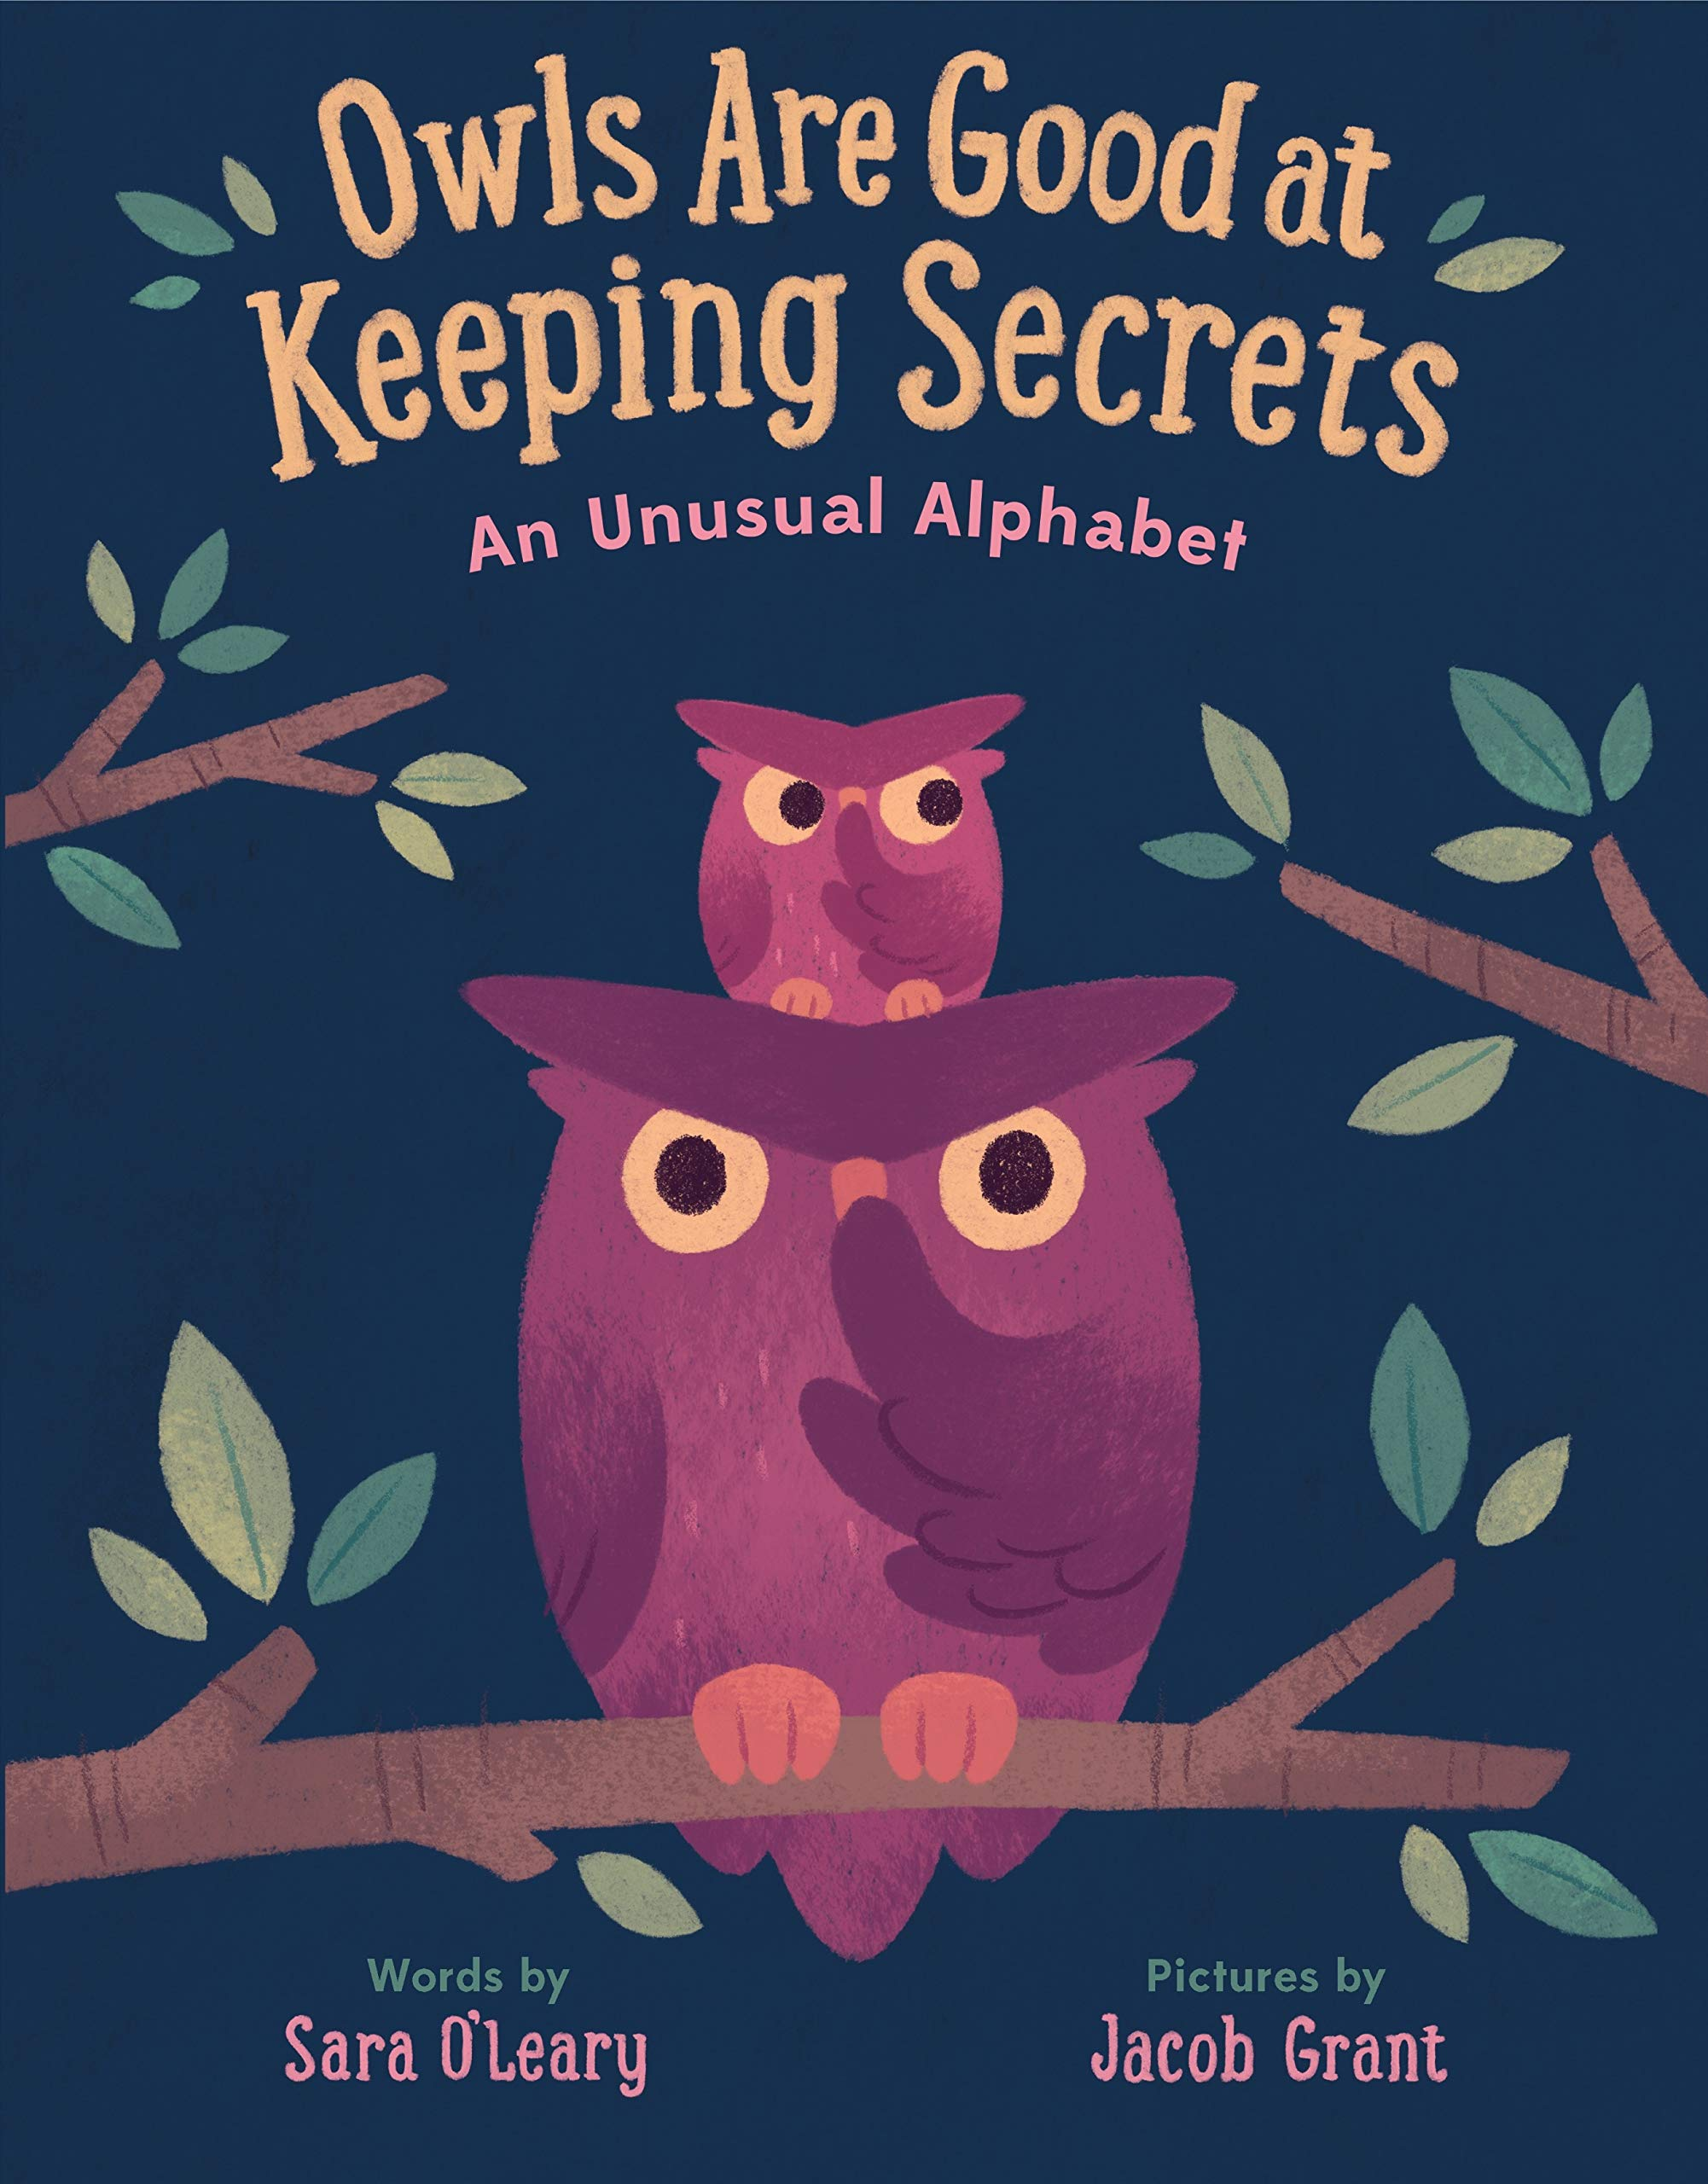 The Best ABC Picture Books - Owls Are Good at Keeping Secrets.jpg